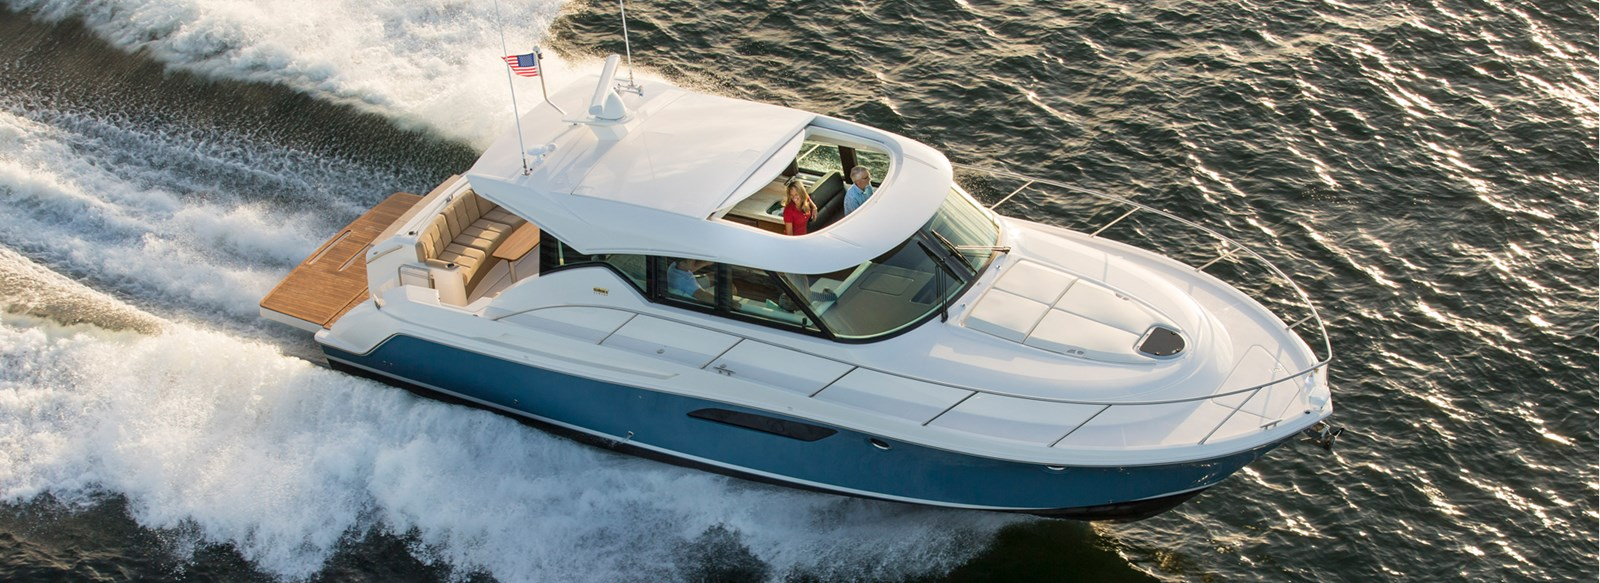 New Tiara 44 Coupe Yachts For Sale